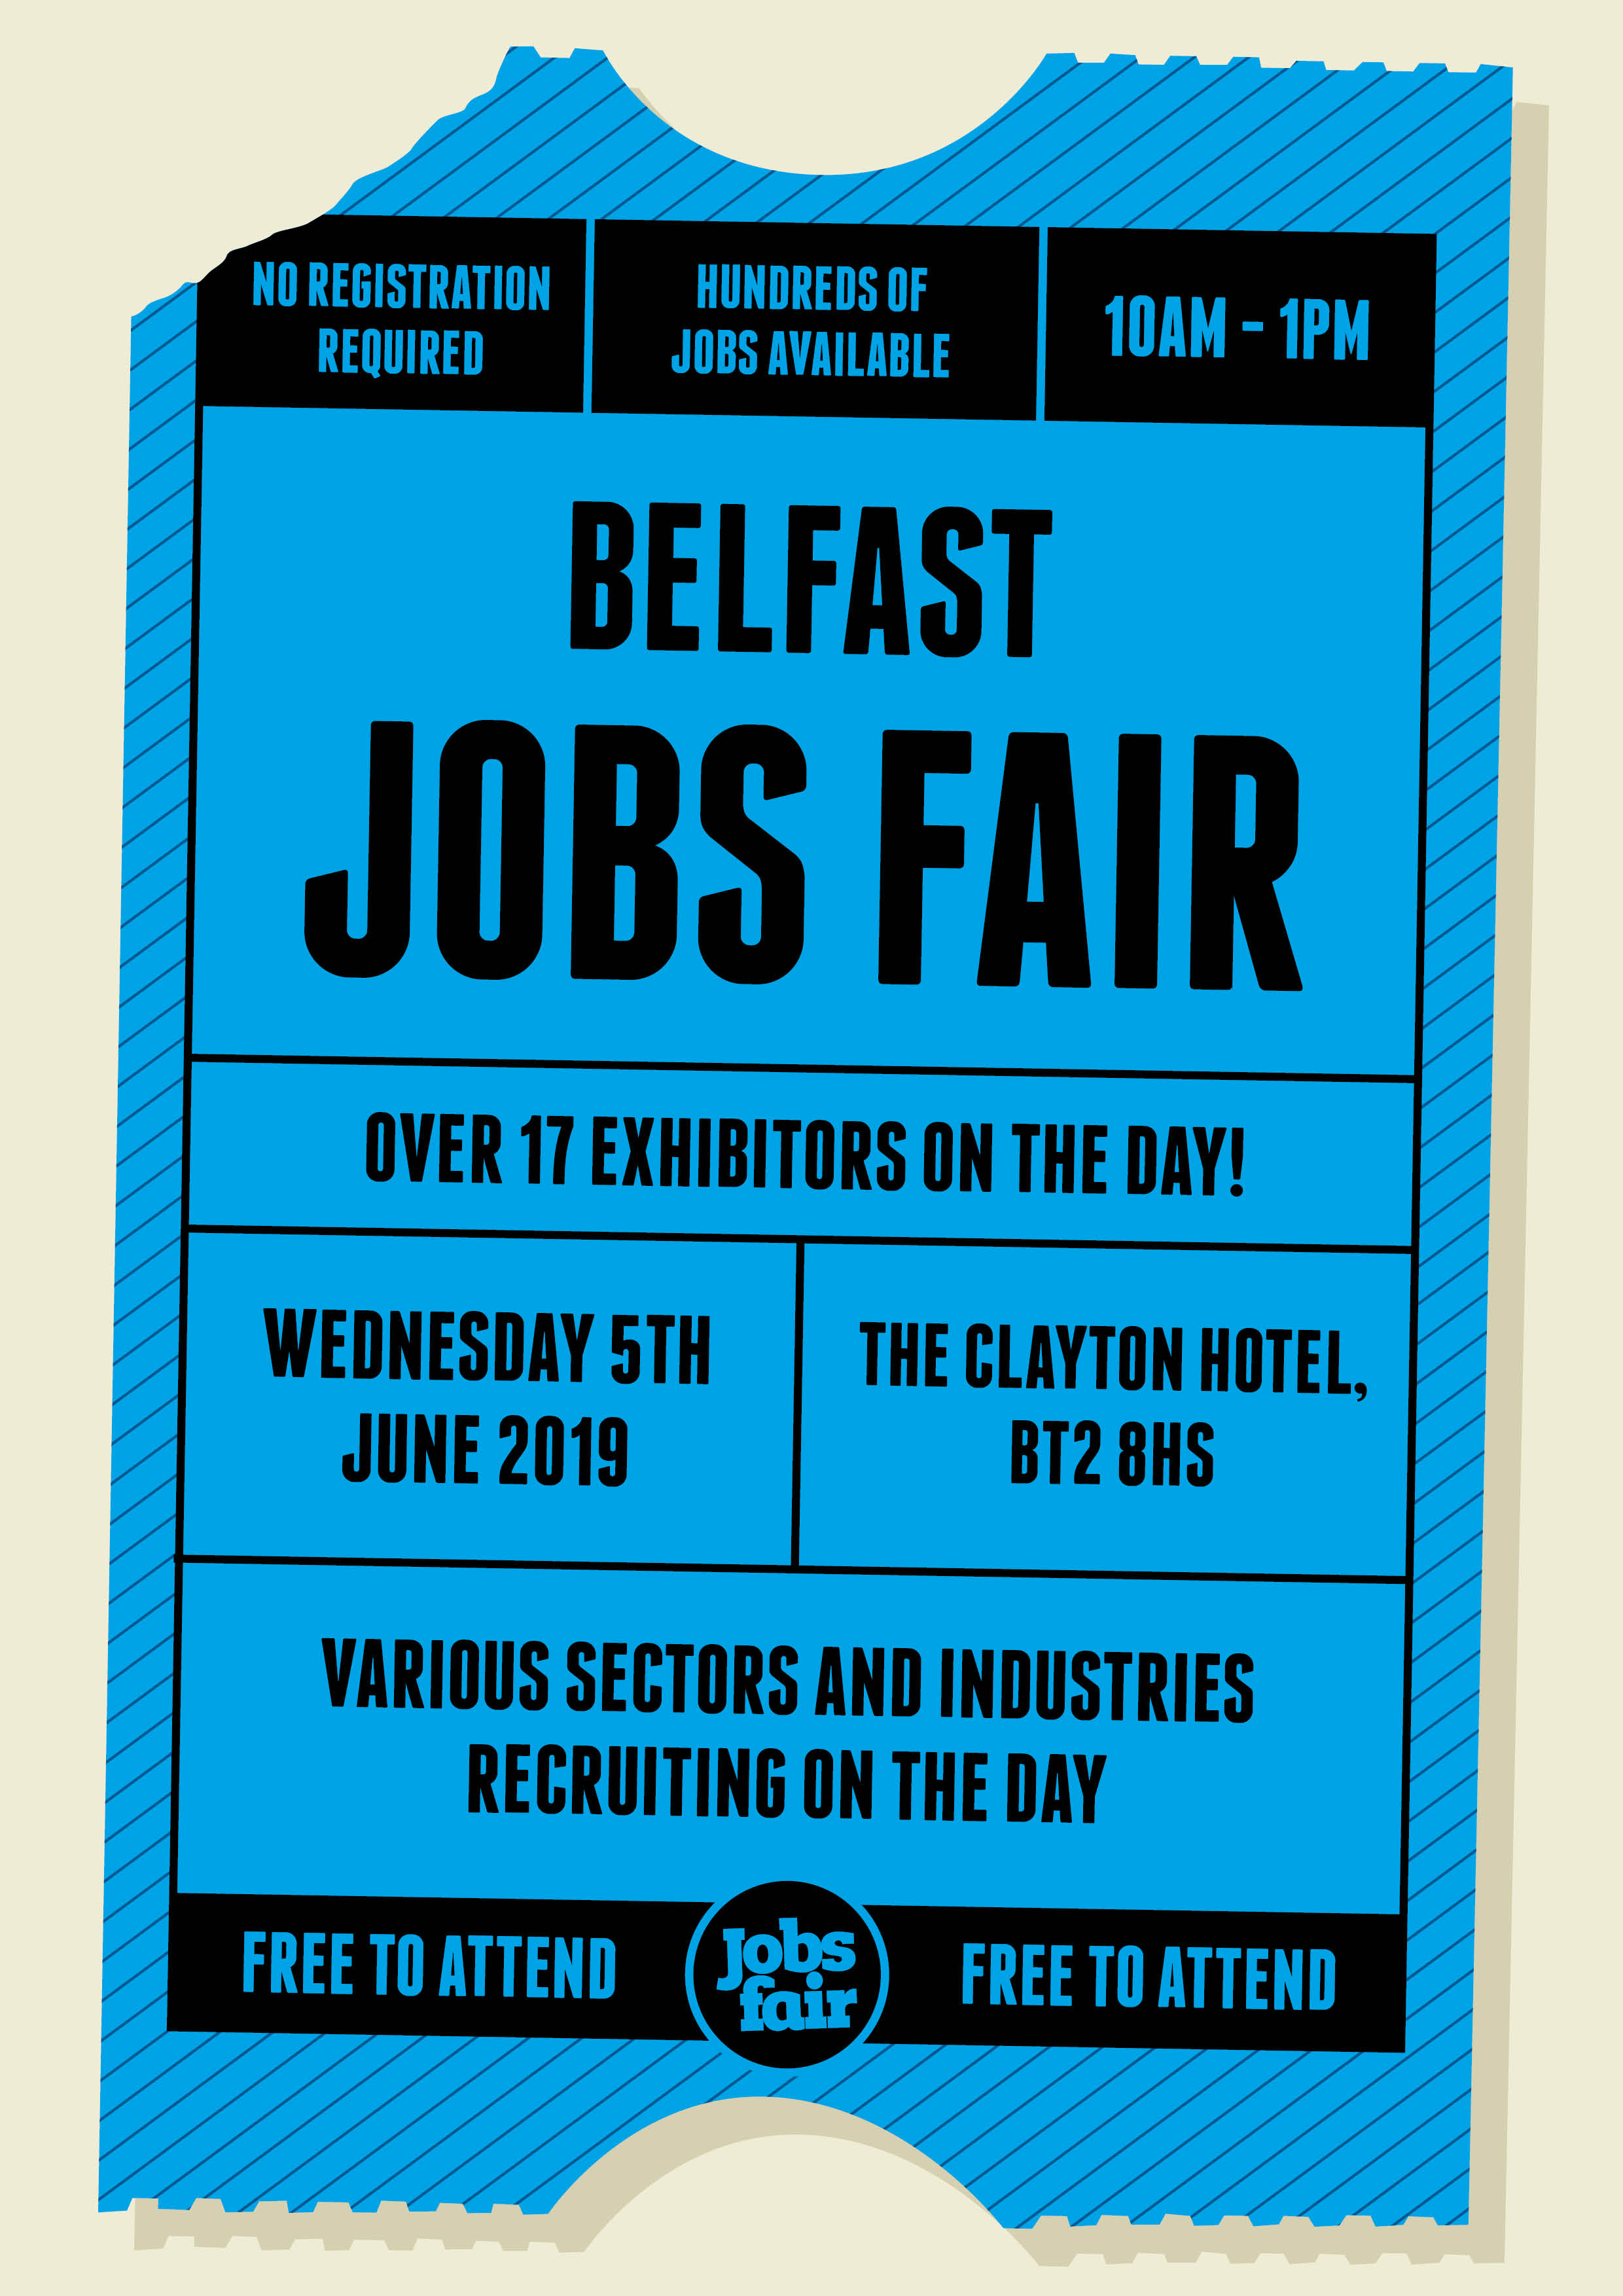 Jobs Fair Belfast